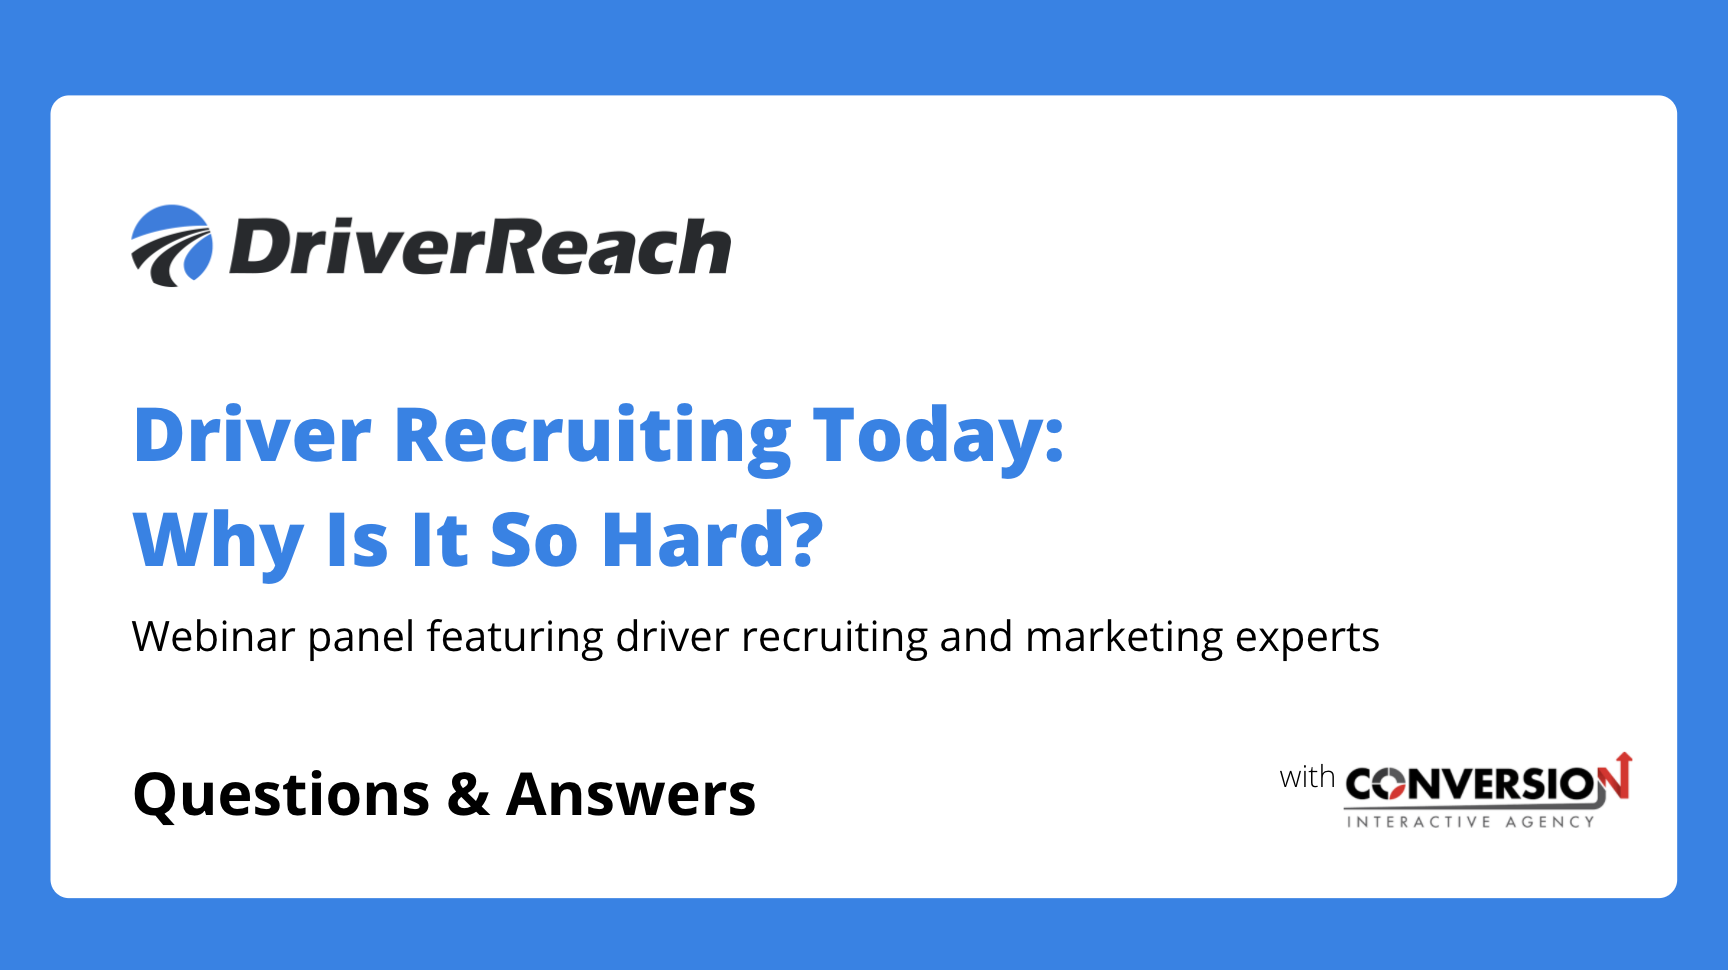 Webinar Q&A Part II: Driver Recruiting Today: Why Is It So Hard?